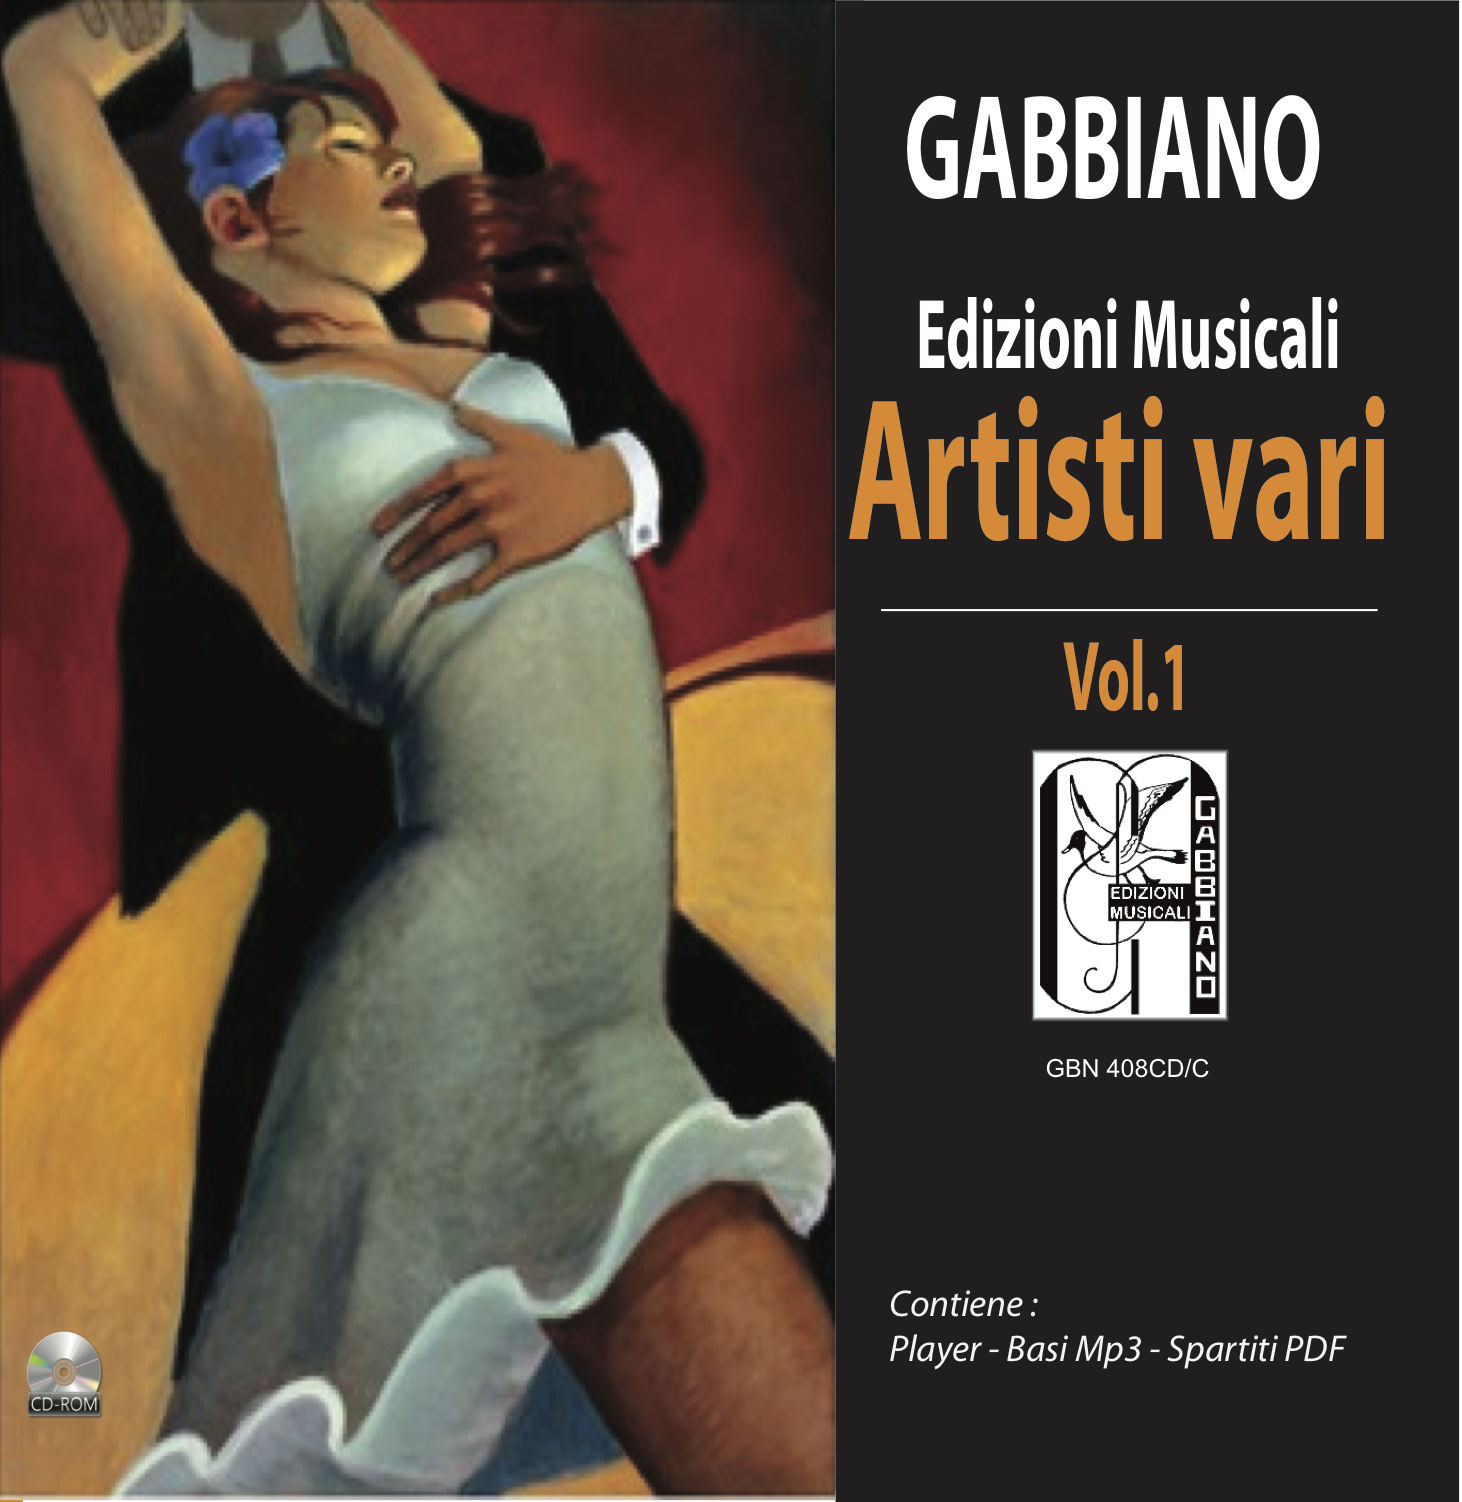 GBN408CD/C - Artisti vari Vol.1 - Volume 408